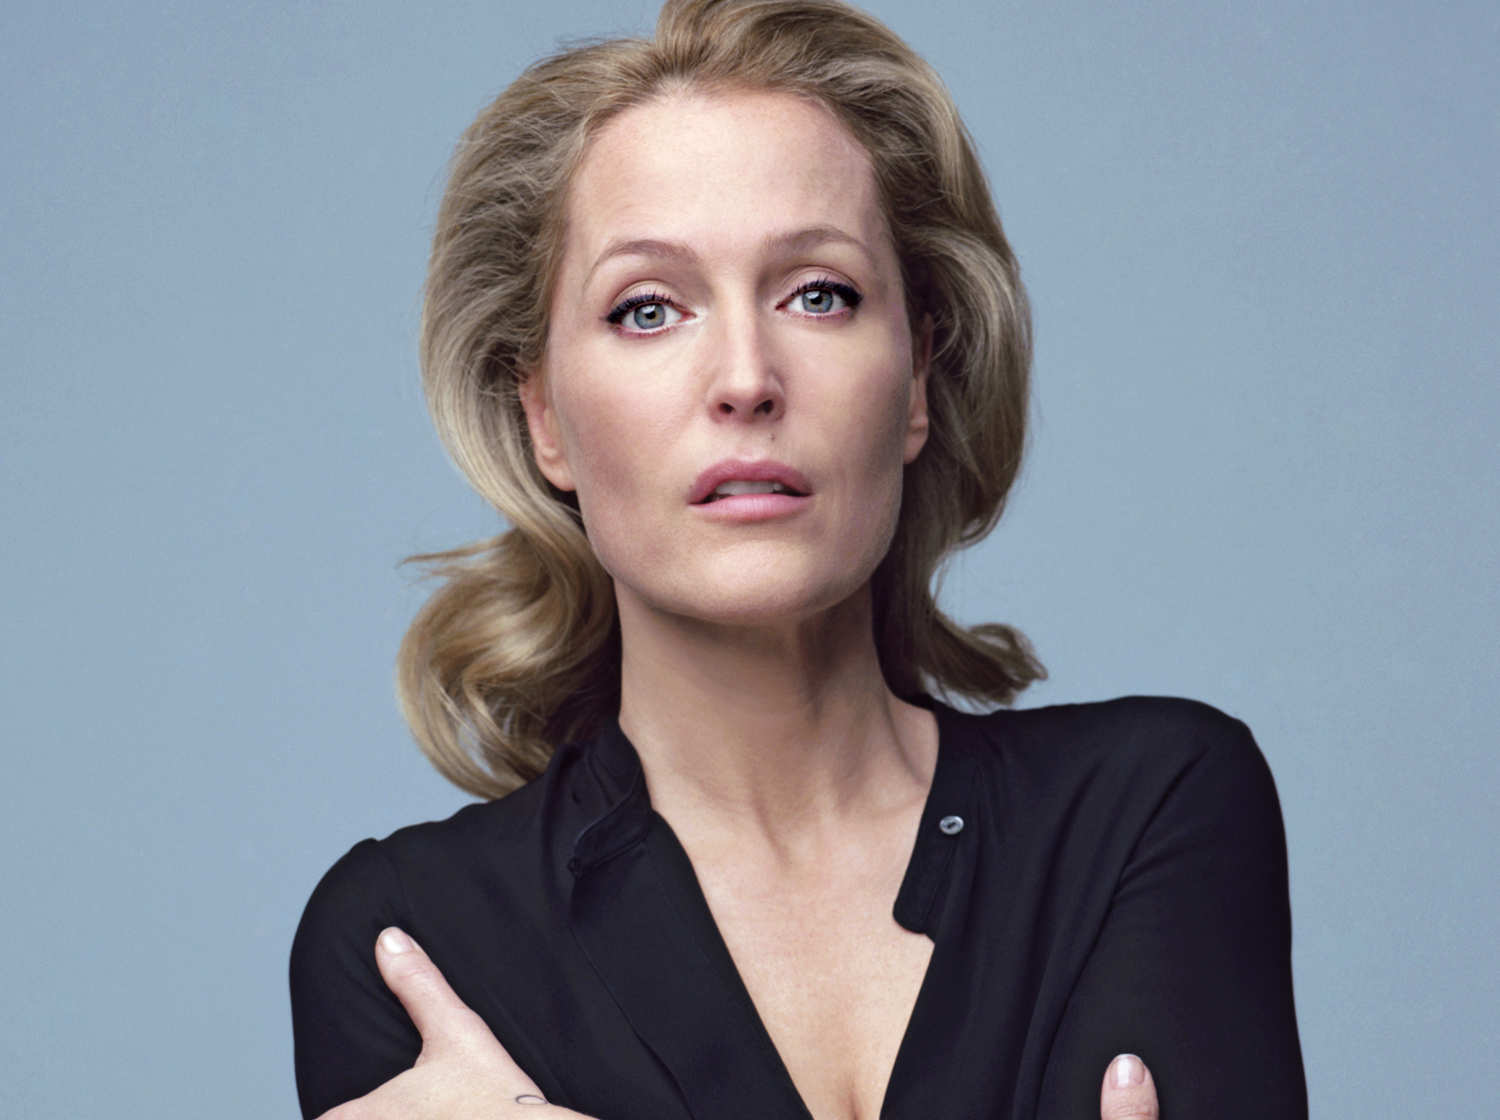 HQ Gillian Anderson Wallpapers | File 74.32Kb